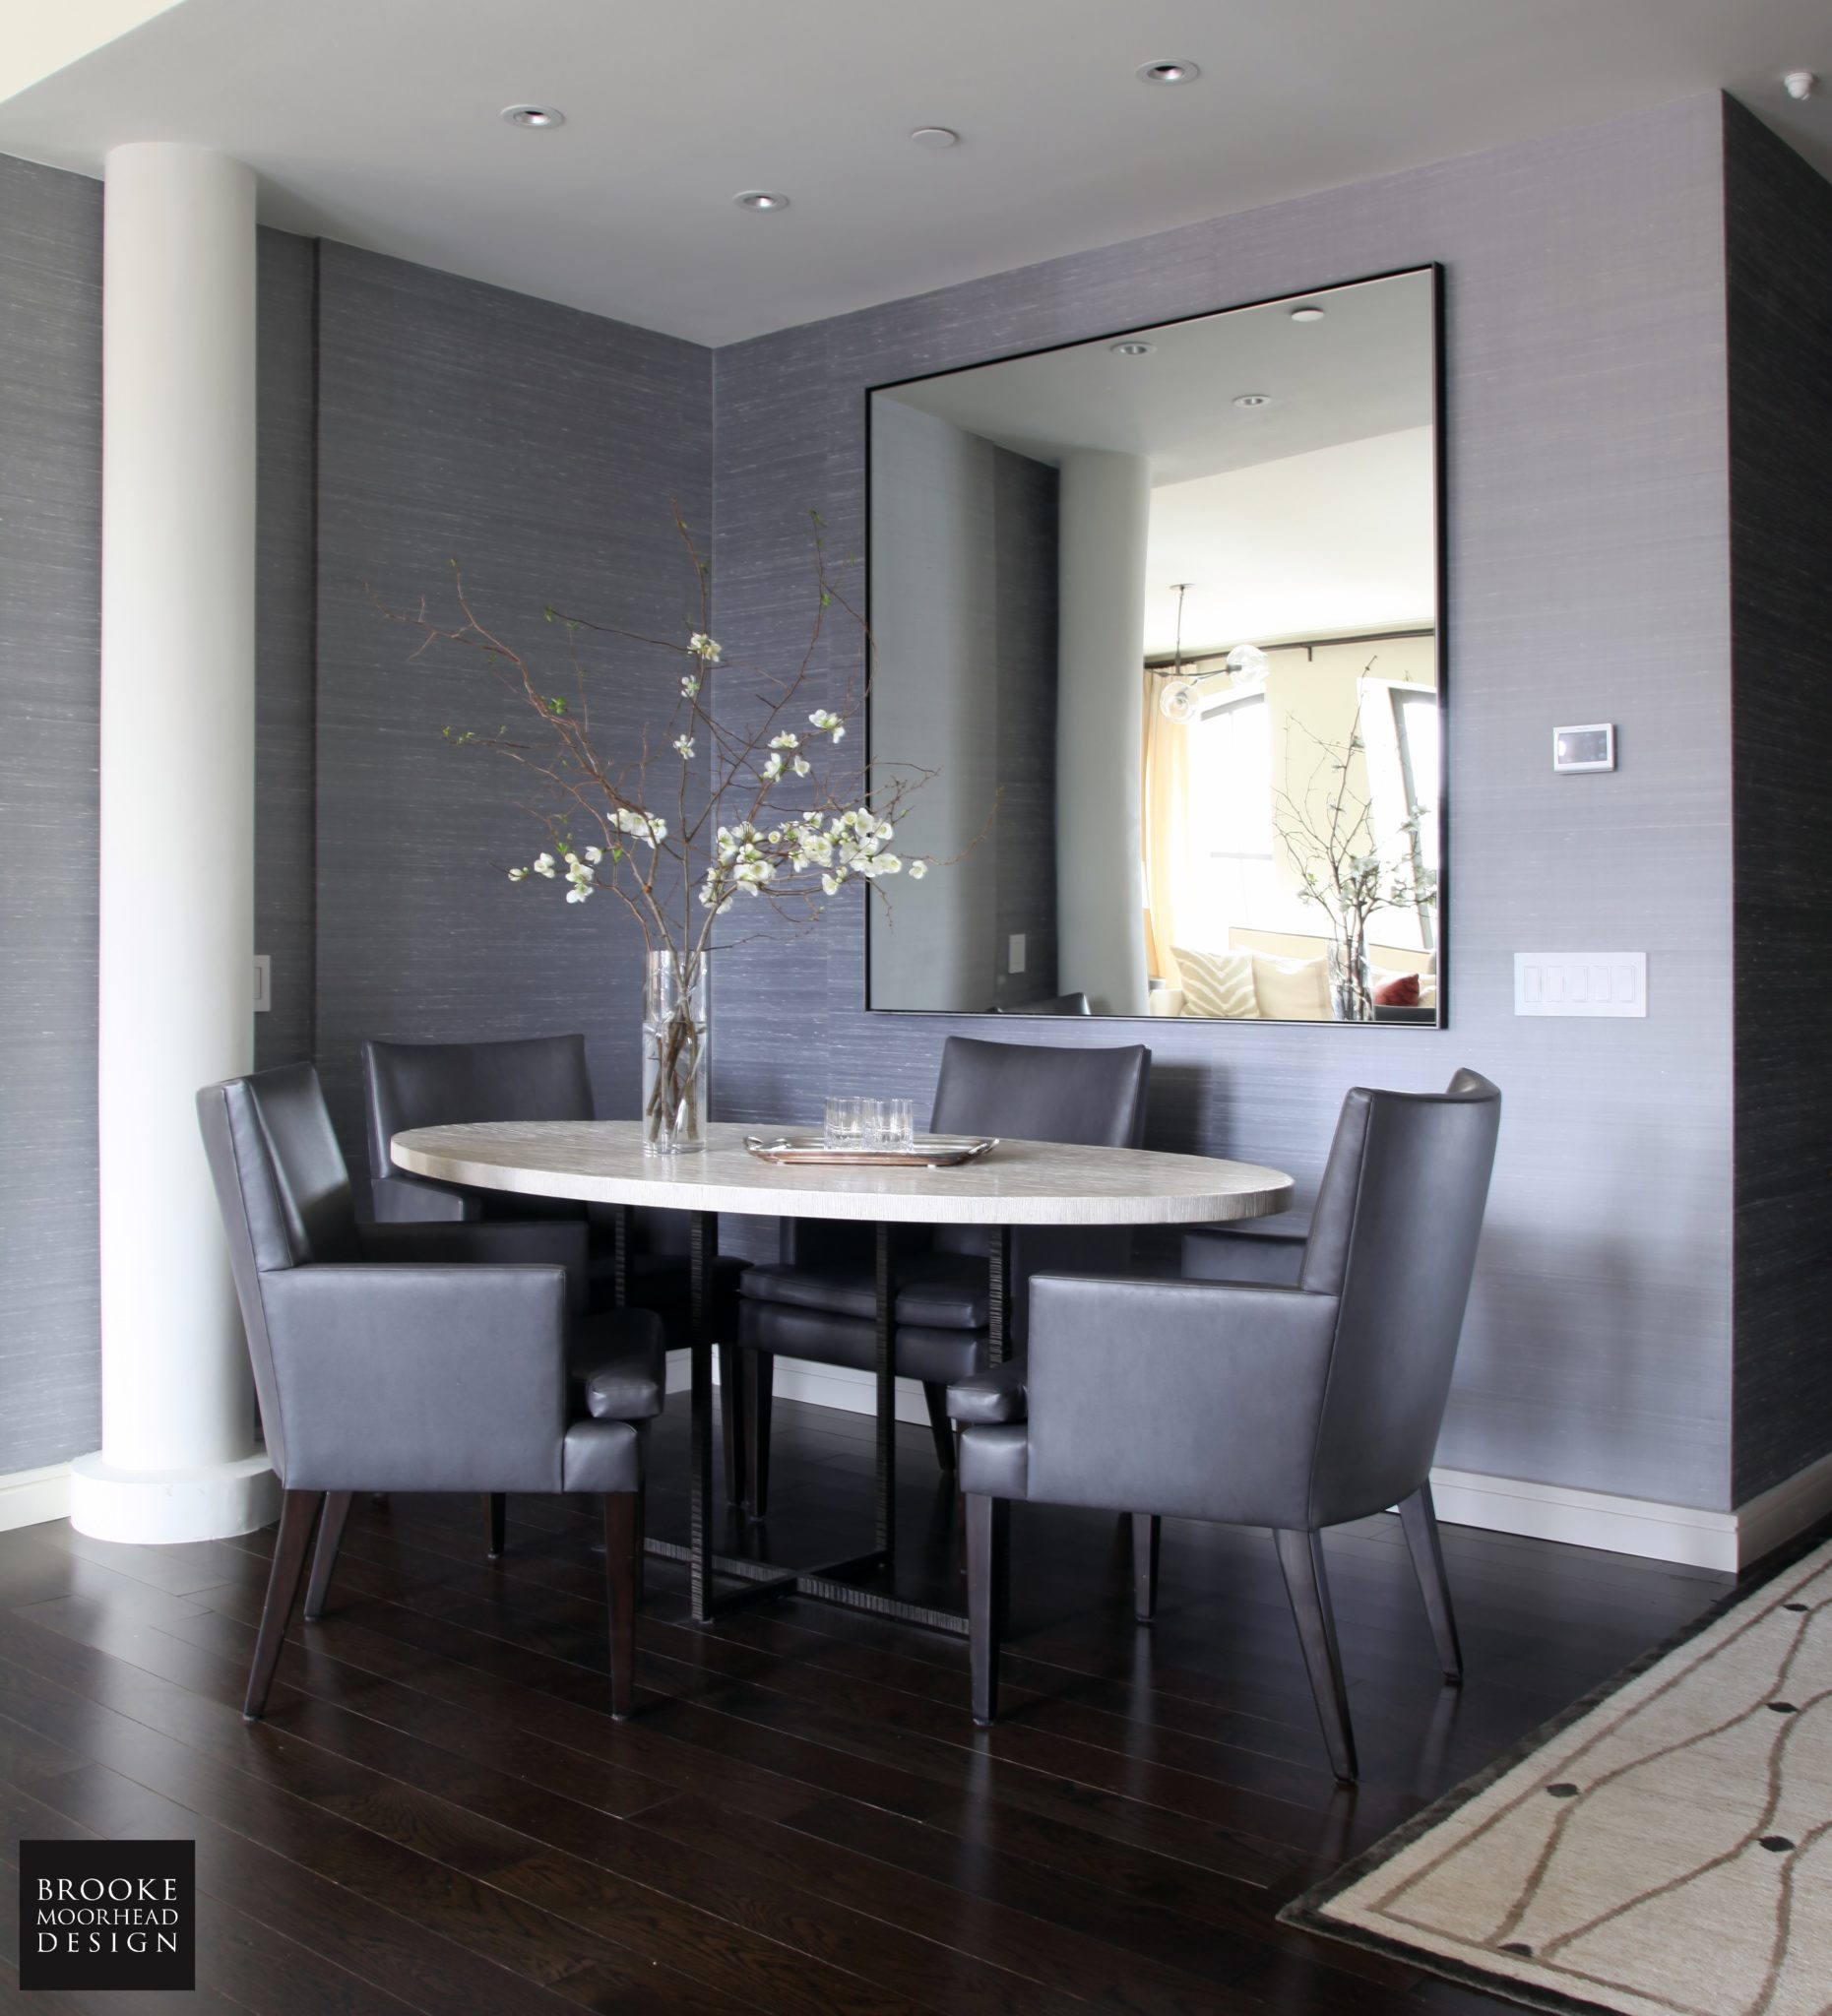 Tribeca Contemporary: Dining Alcove with Oversized Mirror & Custom Dining Table by Brooke Moorhead Design